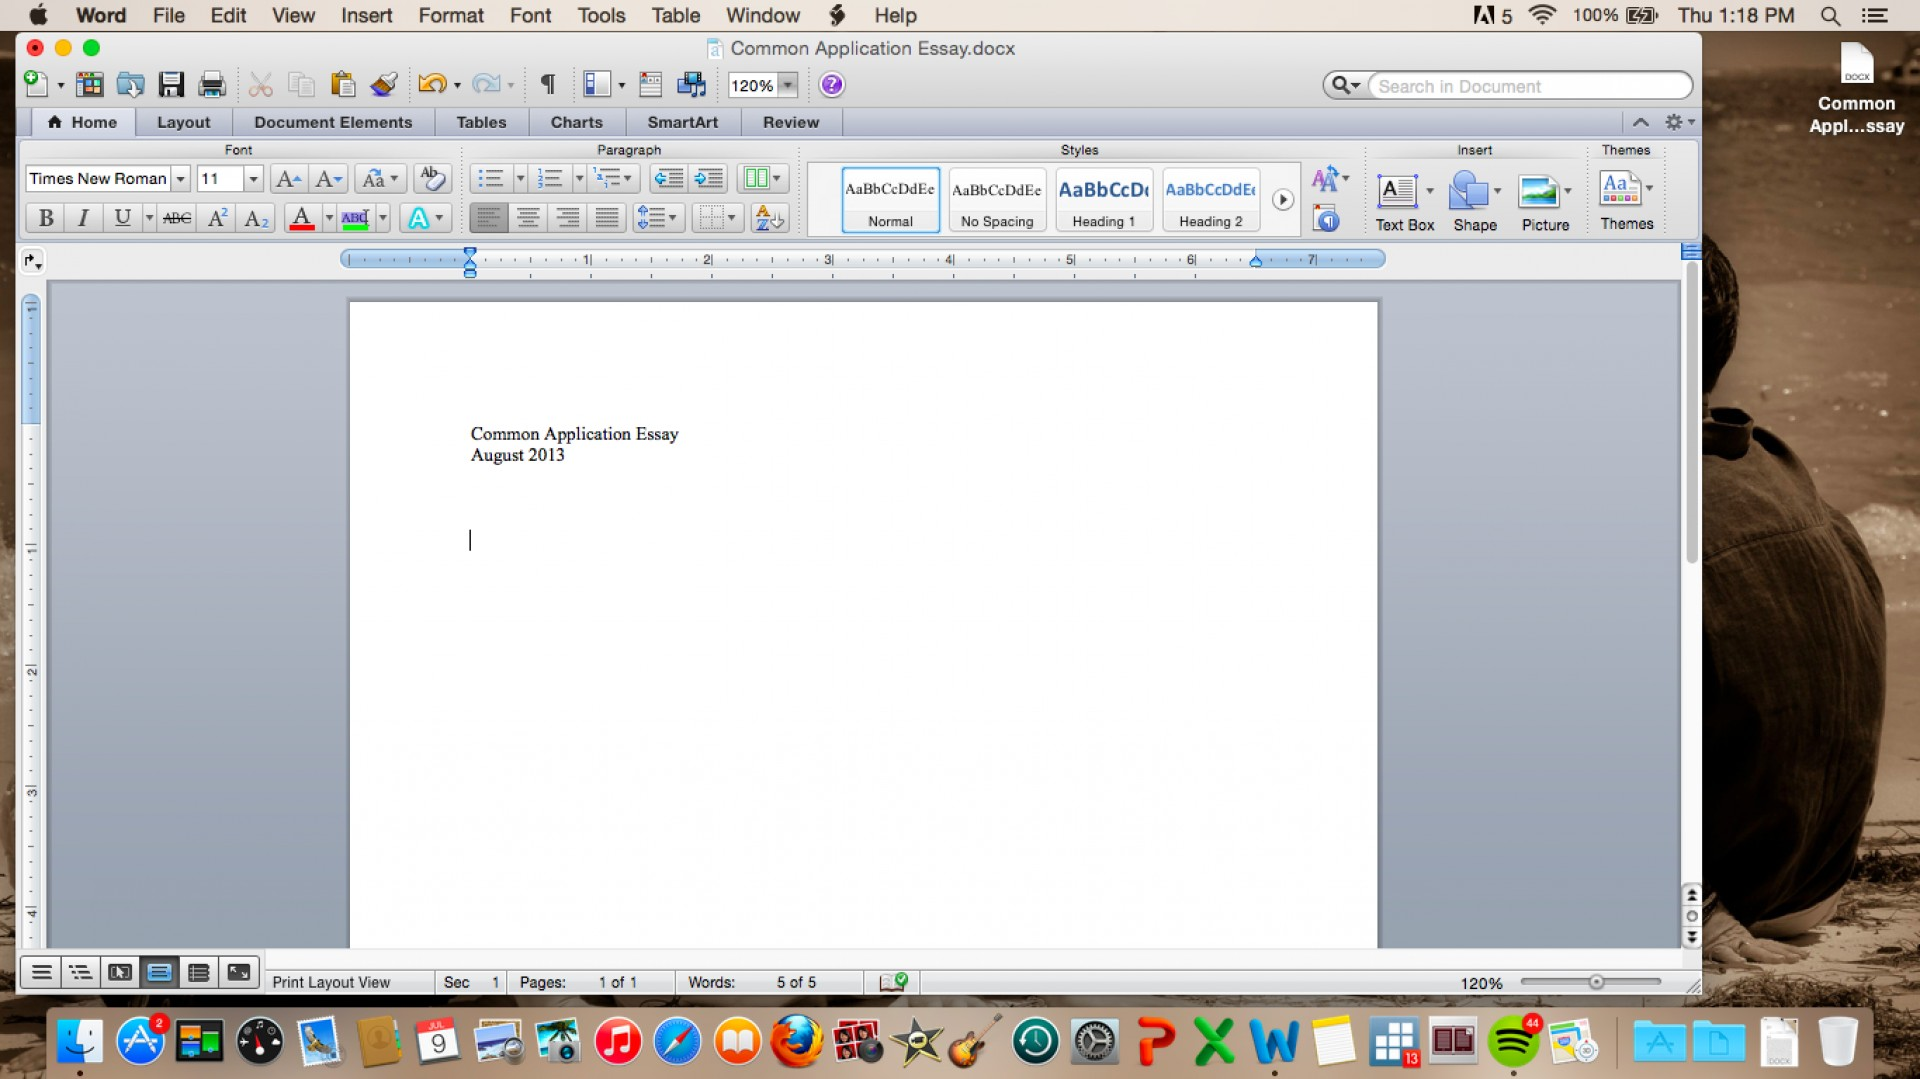 008 Screen Shot 2015 09 At 1 22 Pm Essay Example Common App Essays That Worked Phenomenal Harvard Application Examples 1920